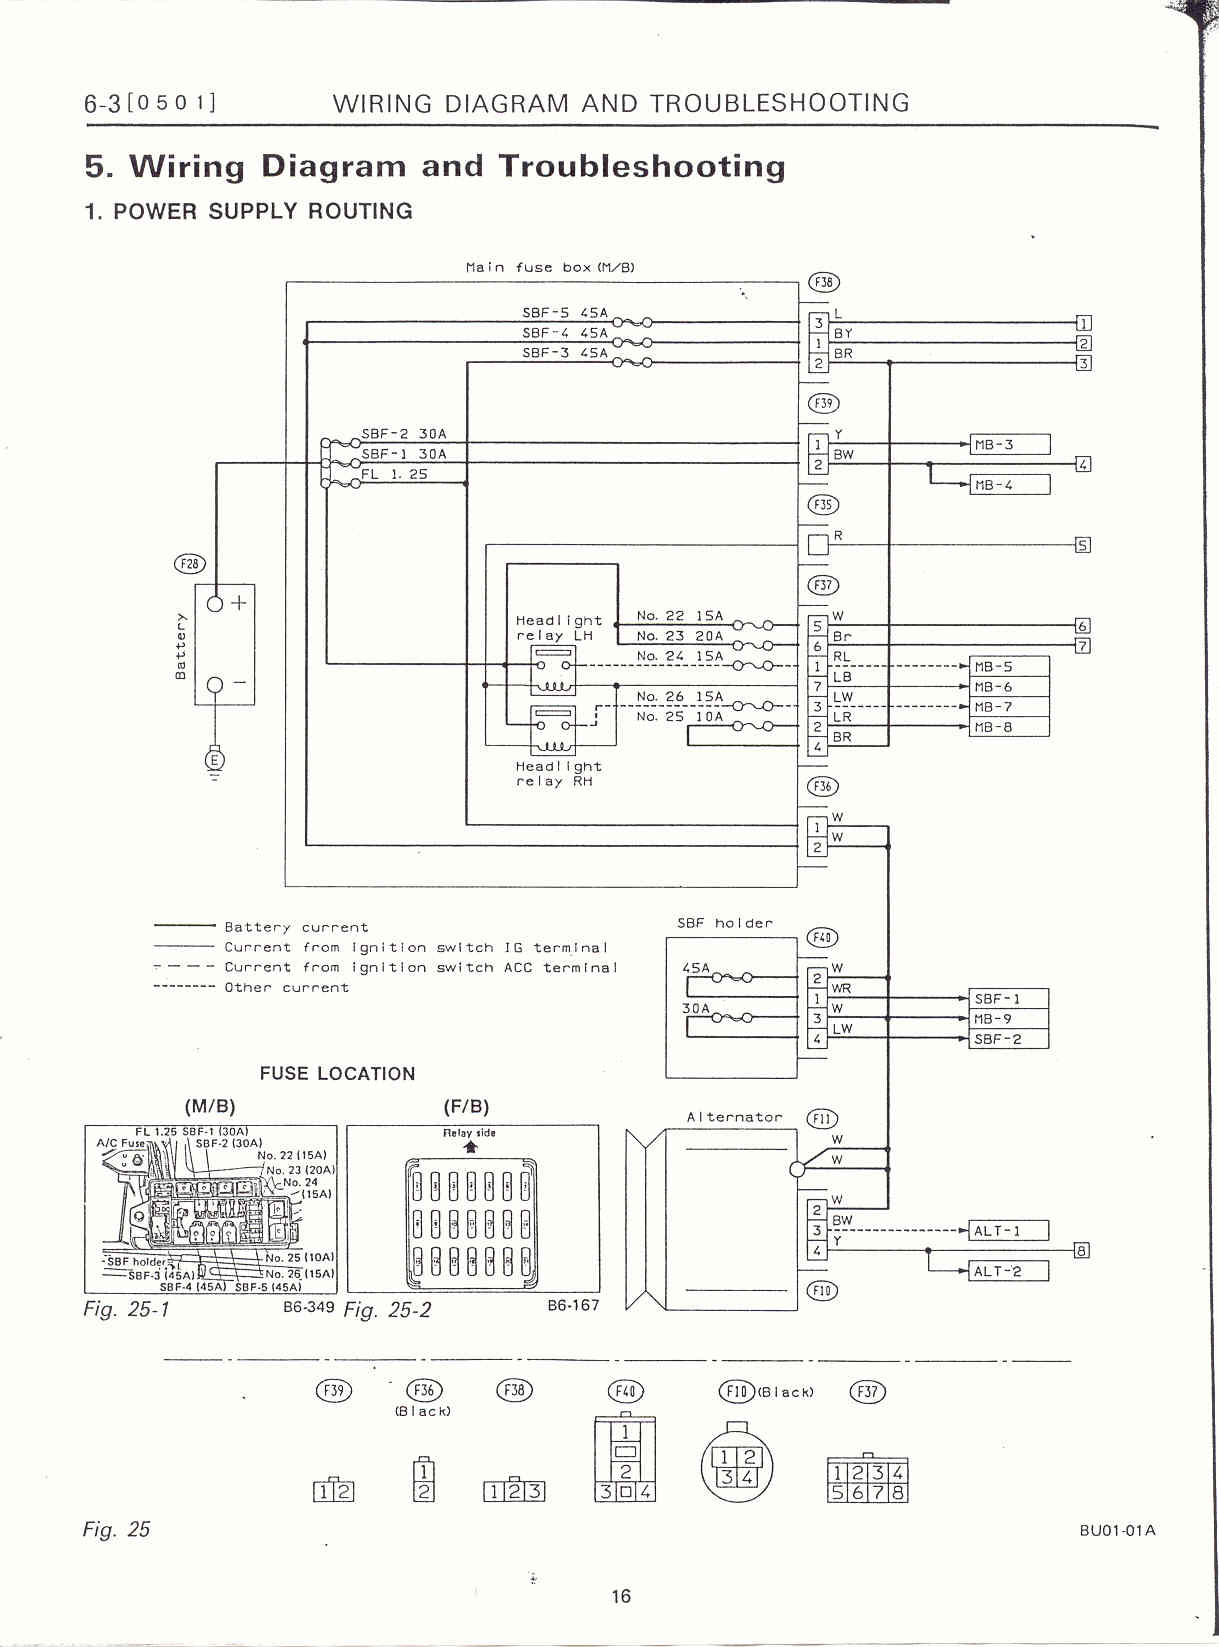 2003 Subaru Outback Trailer Wiring Diagram Not Lossing 2013 Diagrams Ignition Switch Box Rh 40 Pfotenpower Ev De 2004 Engine